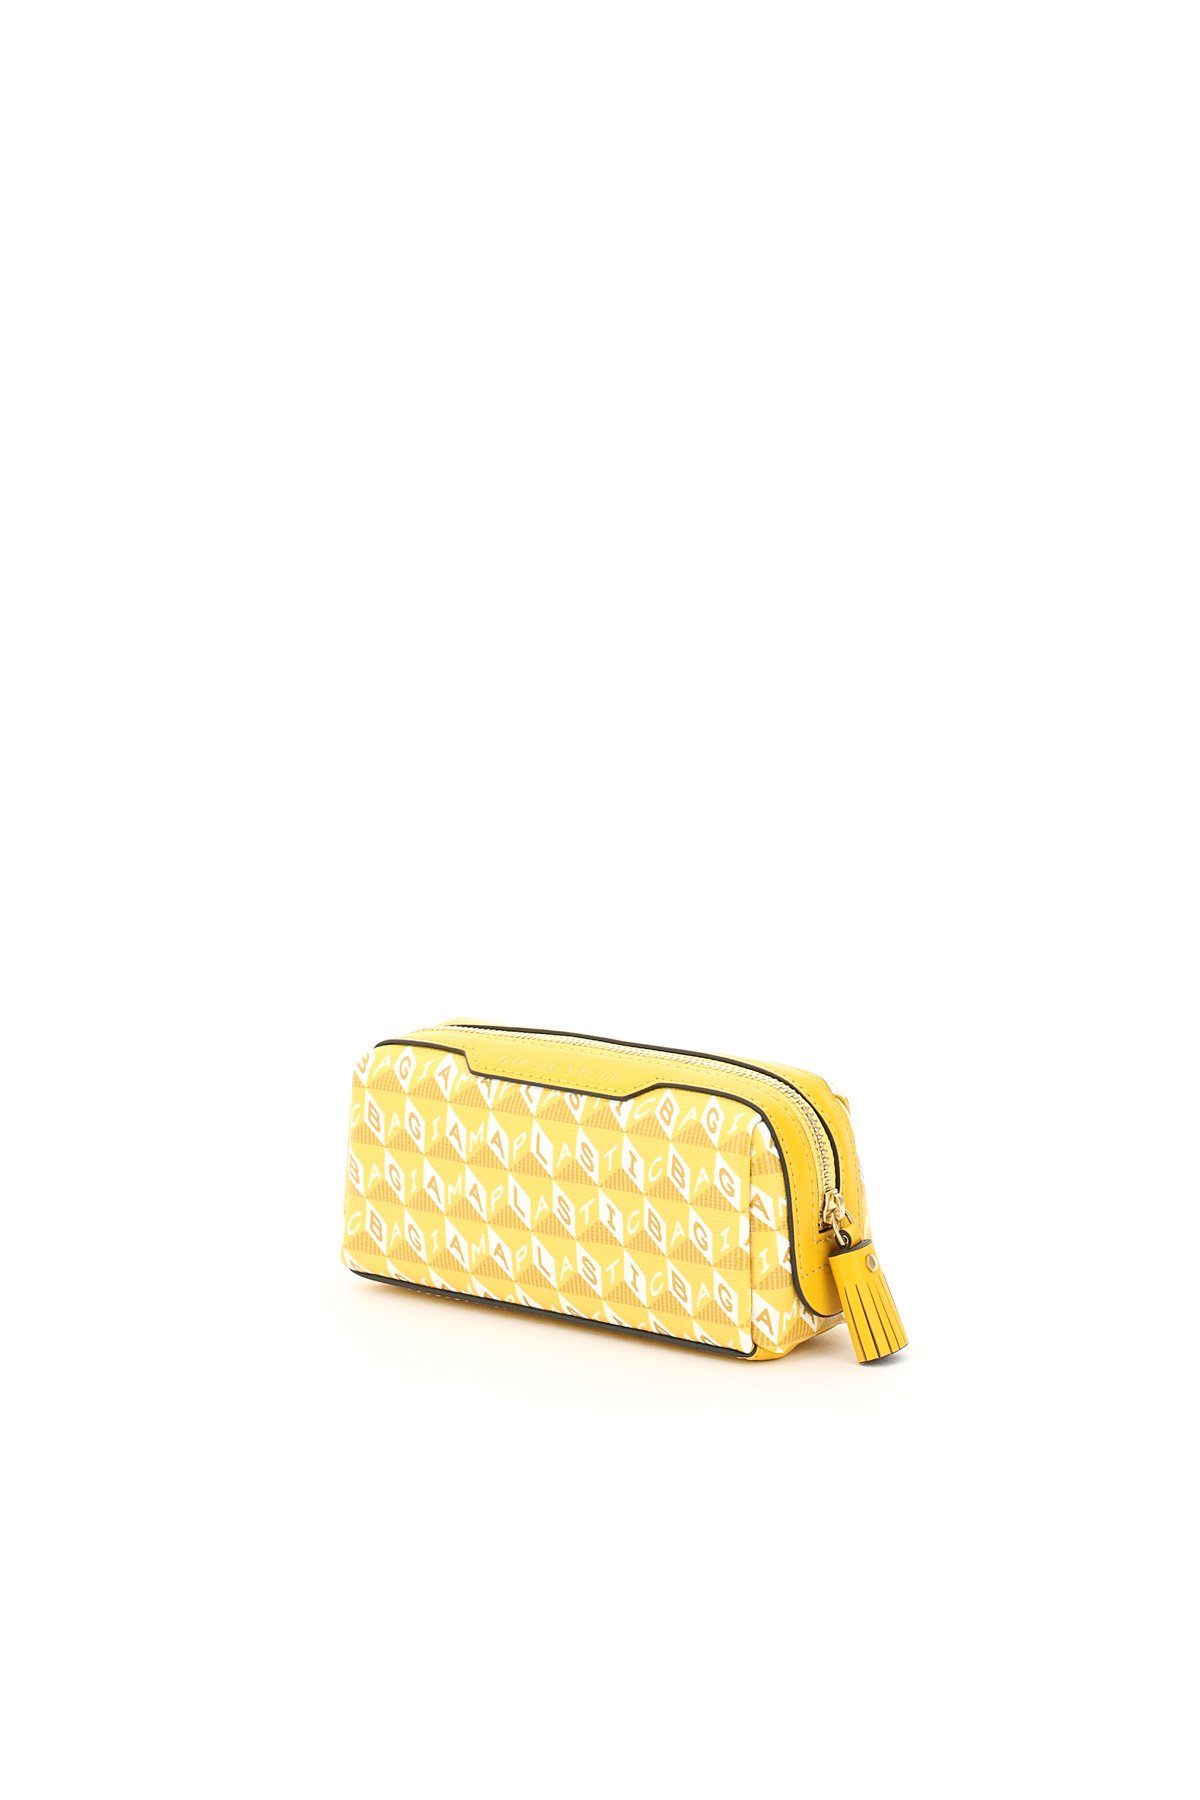 Anya hindmarch i am a plastic bag zany girlie stuff pouch